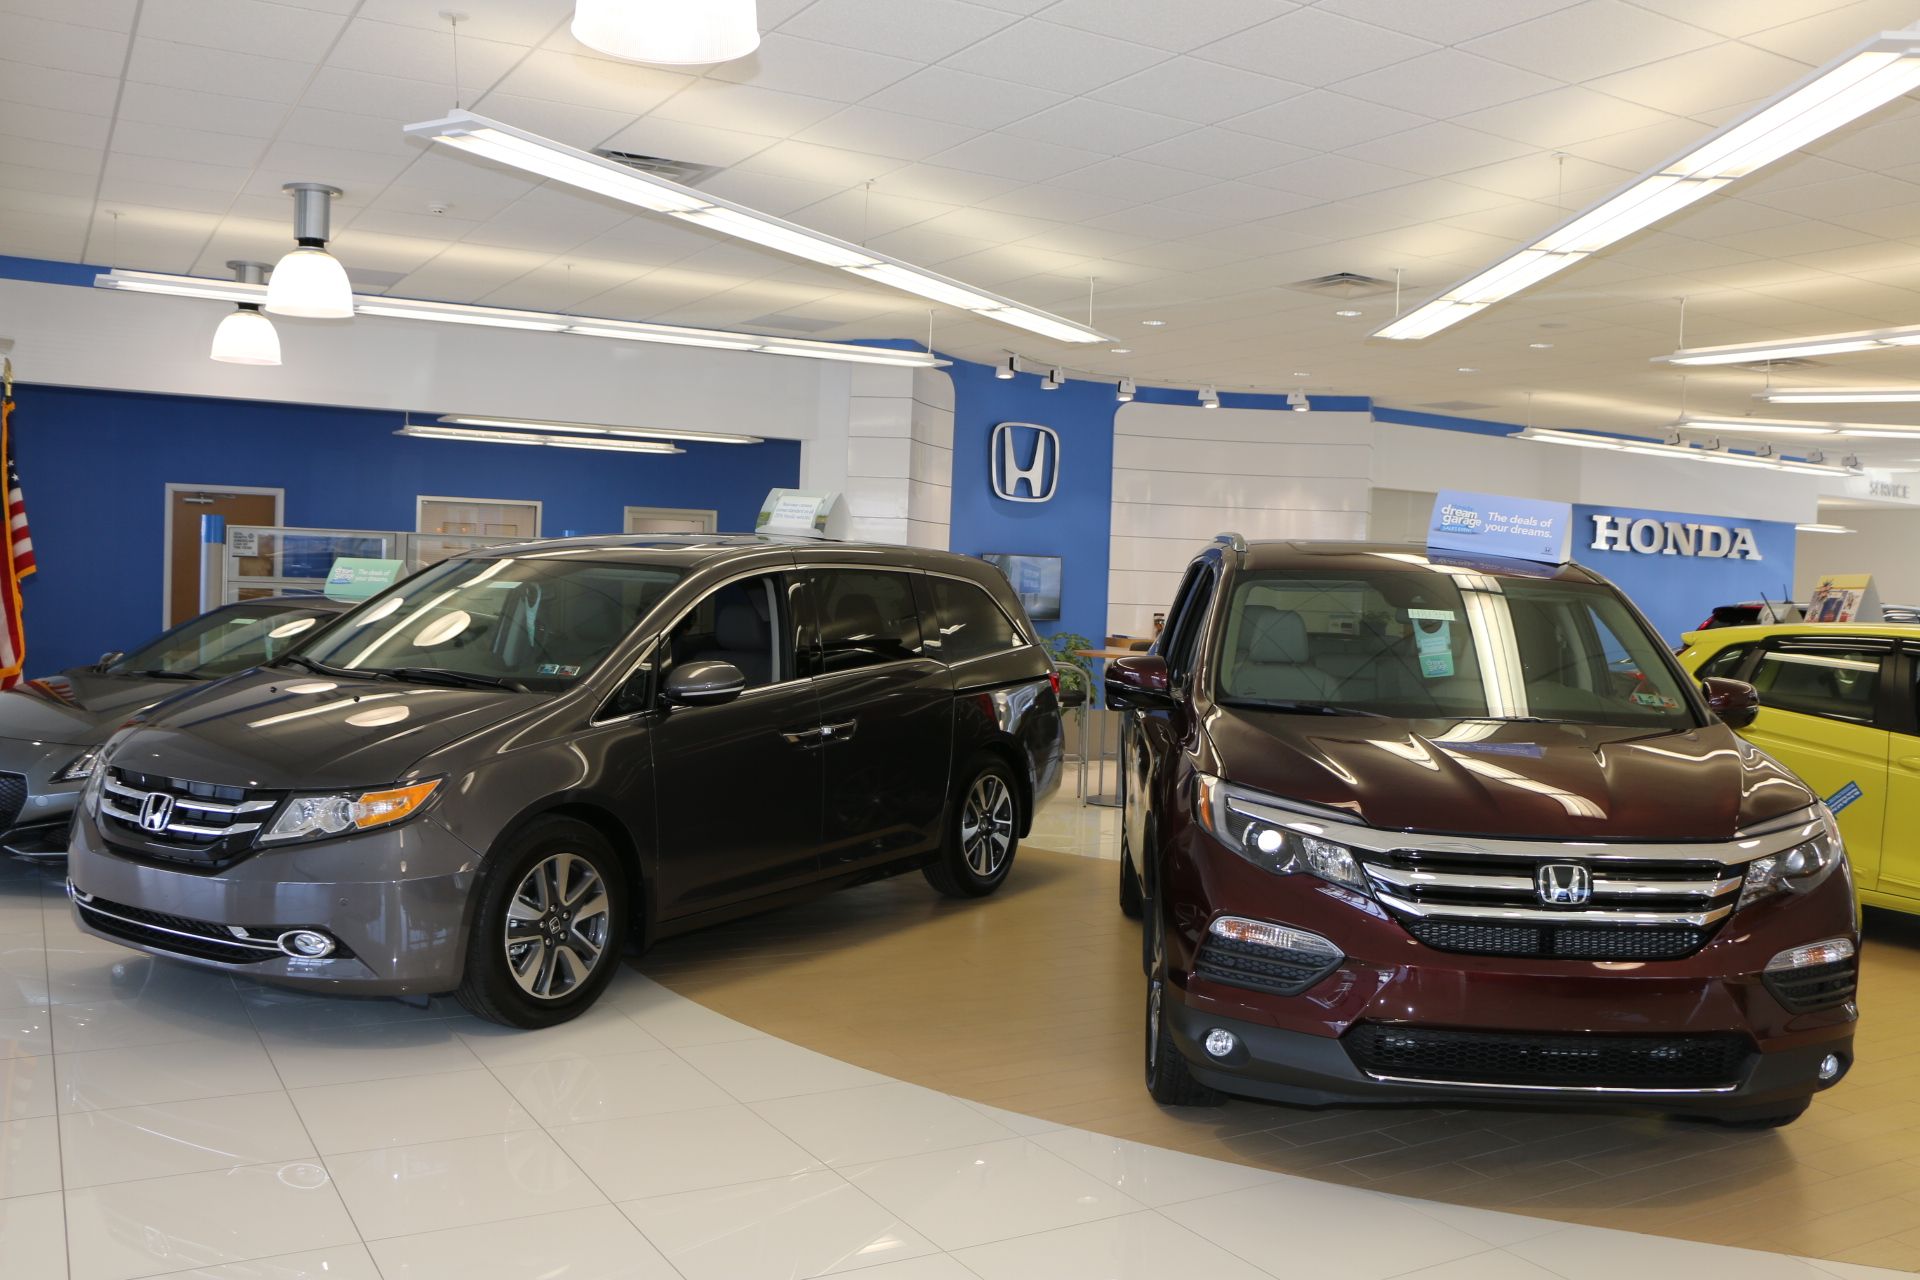 Toyota Dealer Johnstown >> New Honda Vehicles In Greensburg Pa Accord Civic Fit | Autos Post